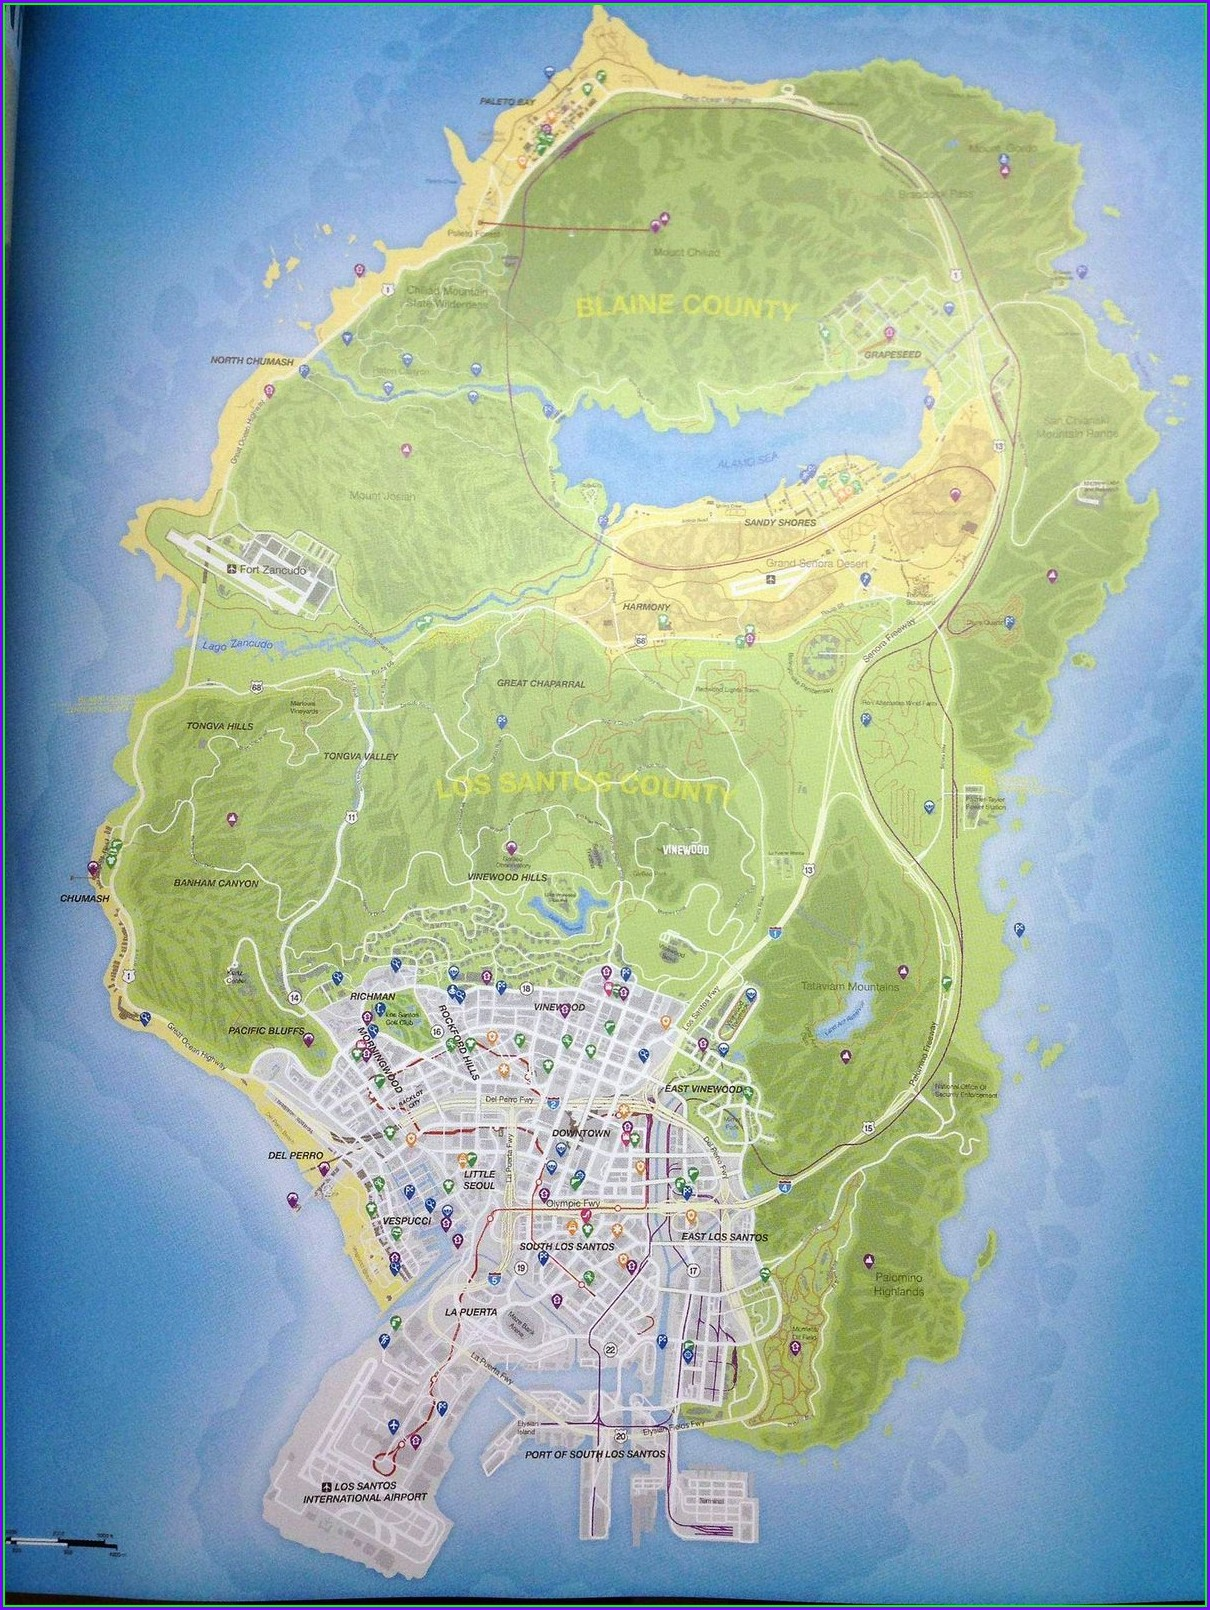 Full Gta 5 Map With Street Names